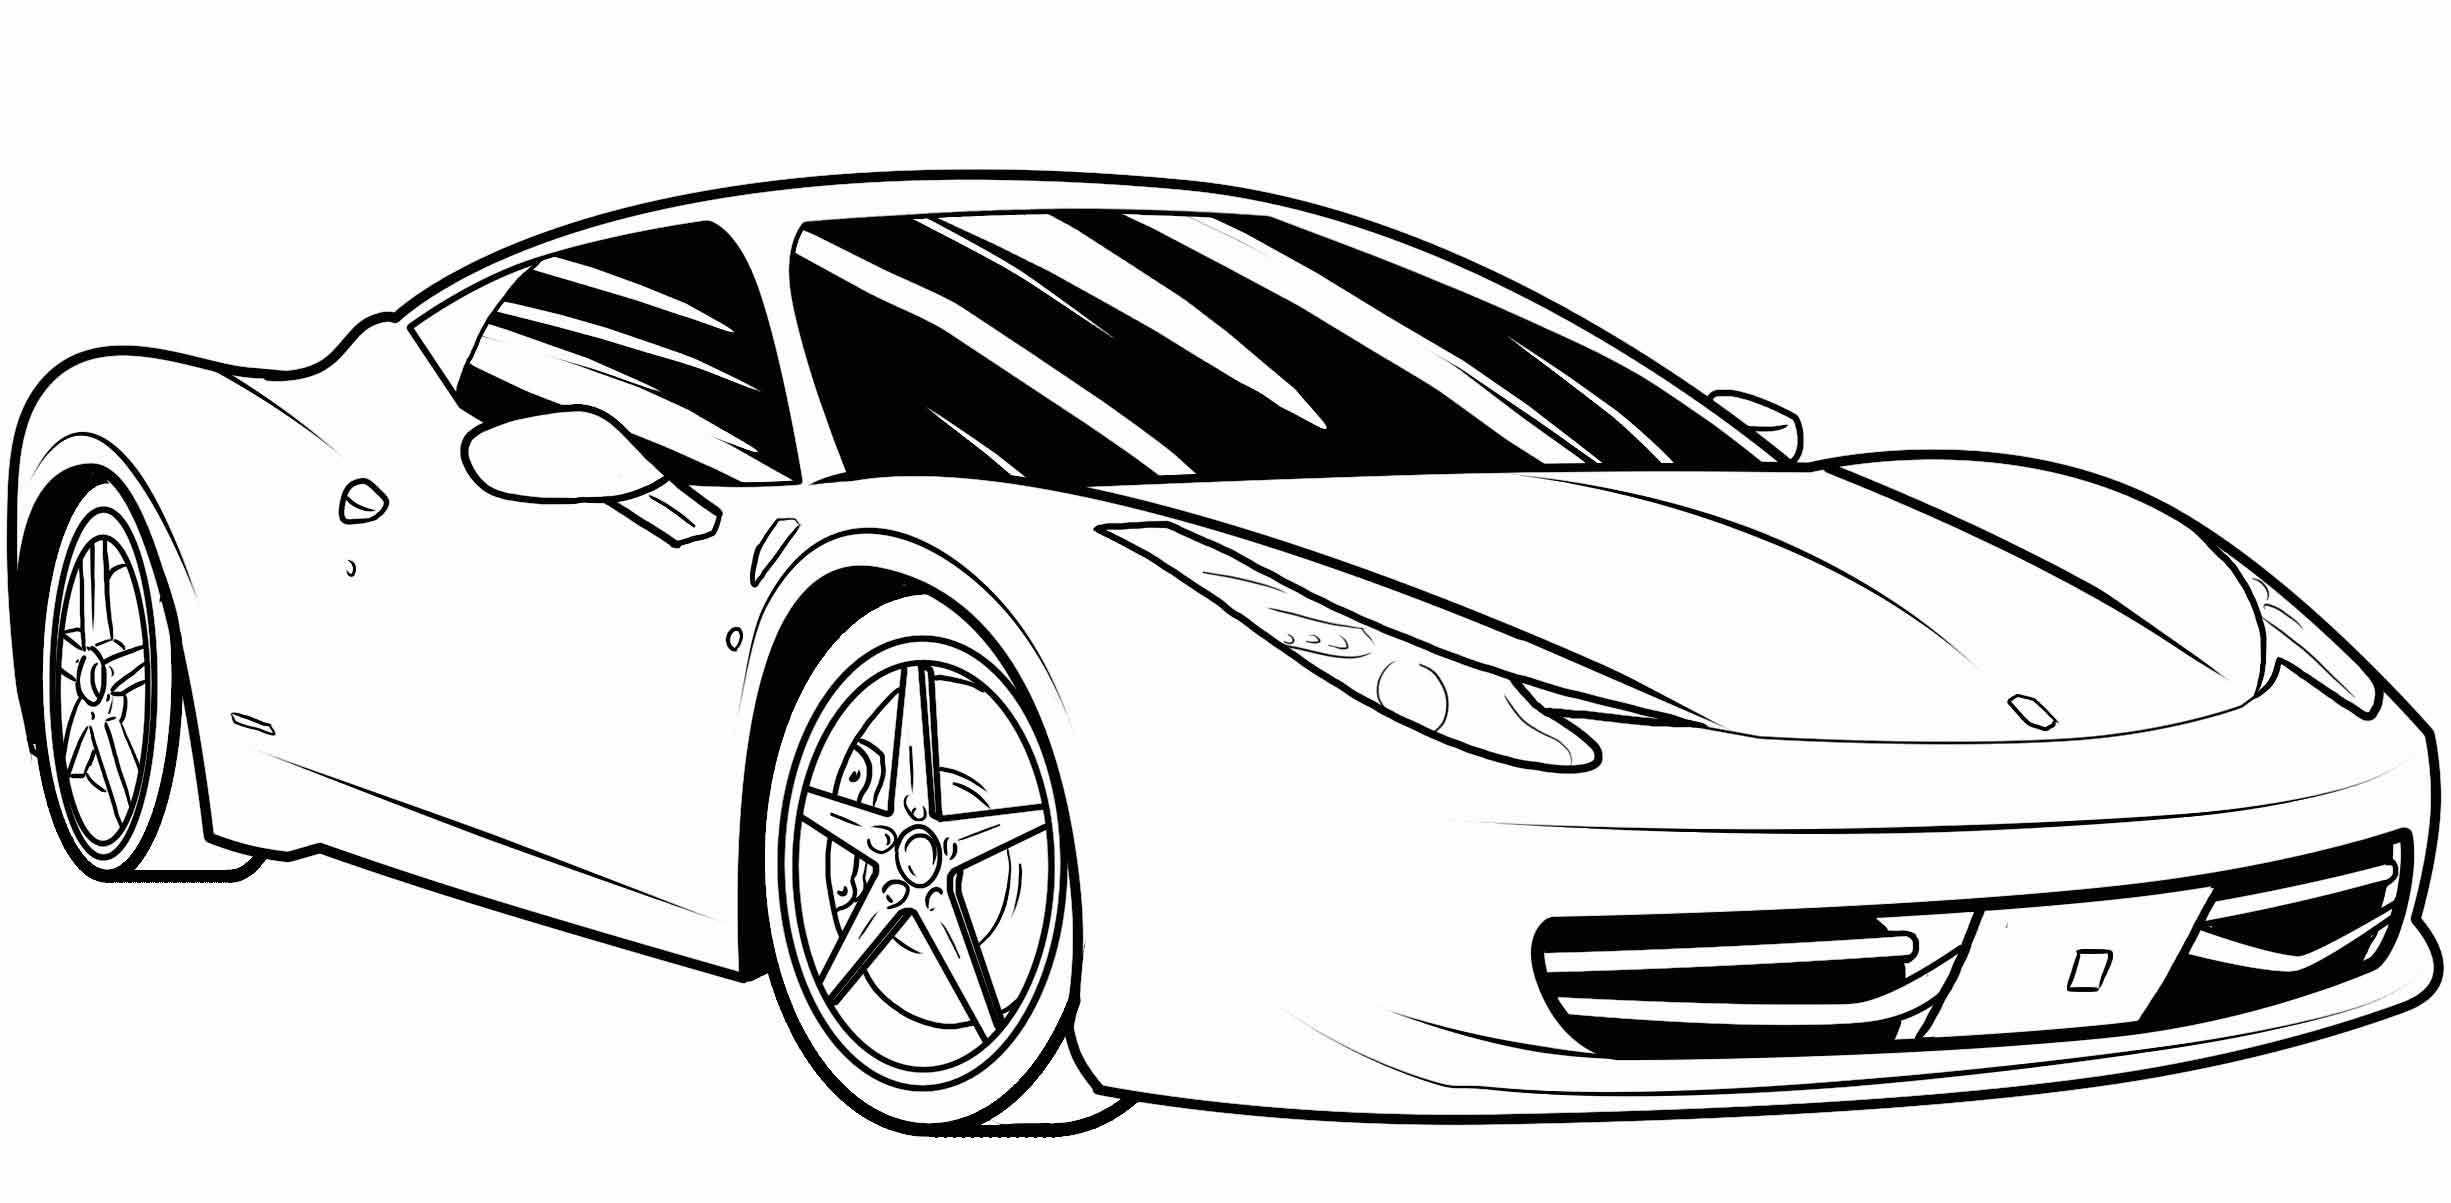 car color sheet chevy cars coloring pages download and print for free sheet color car